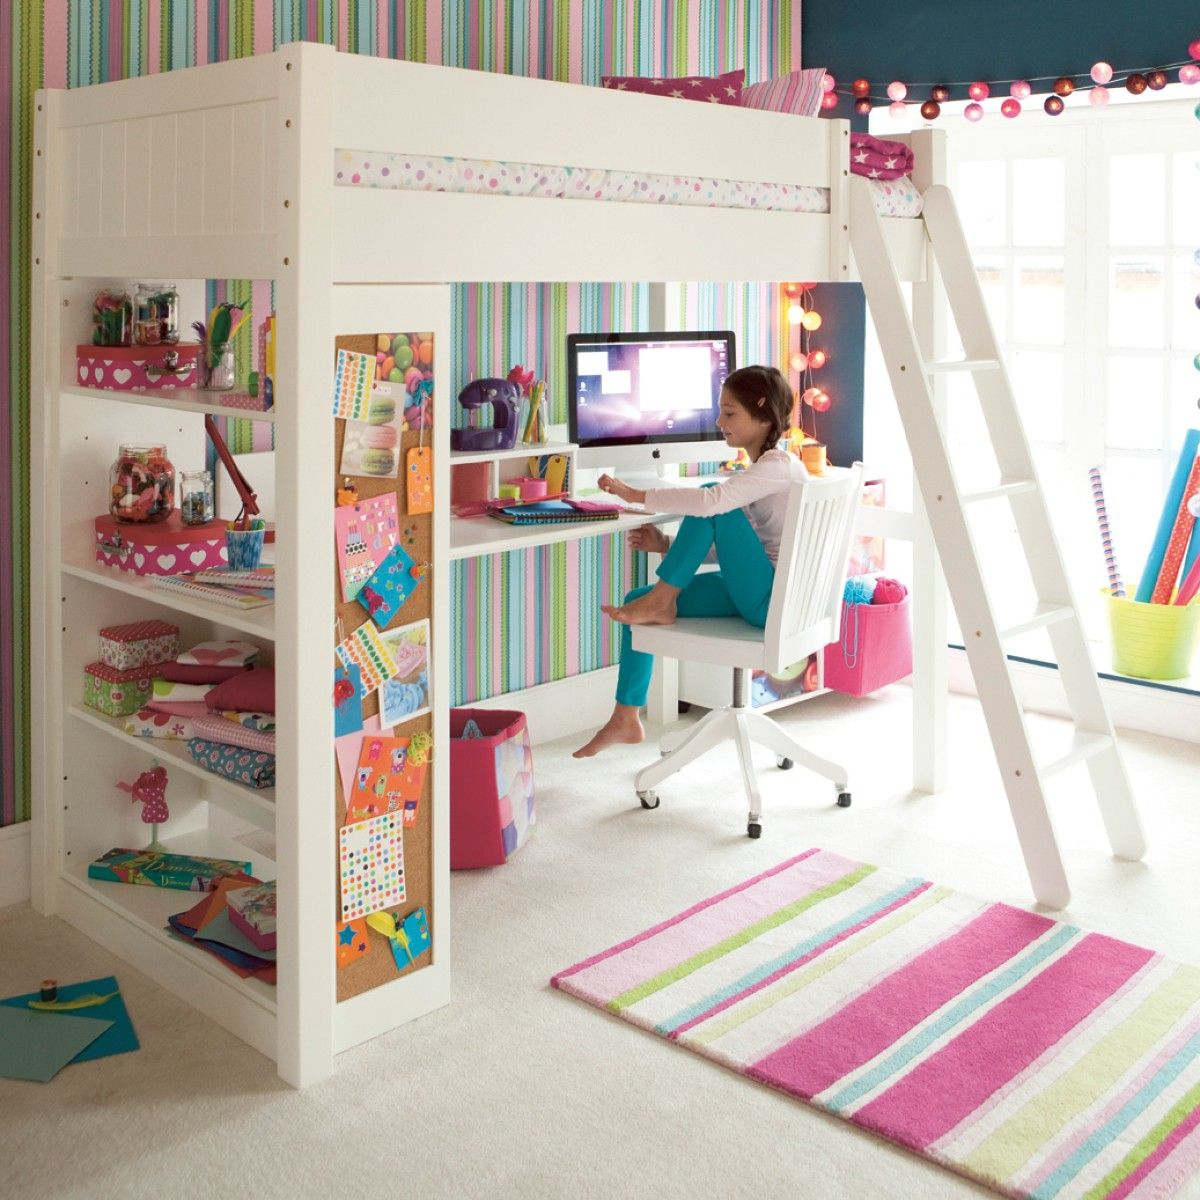 Closest I can find in UK to the loft bed constantly pinned